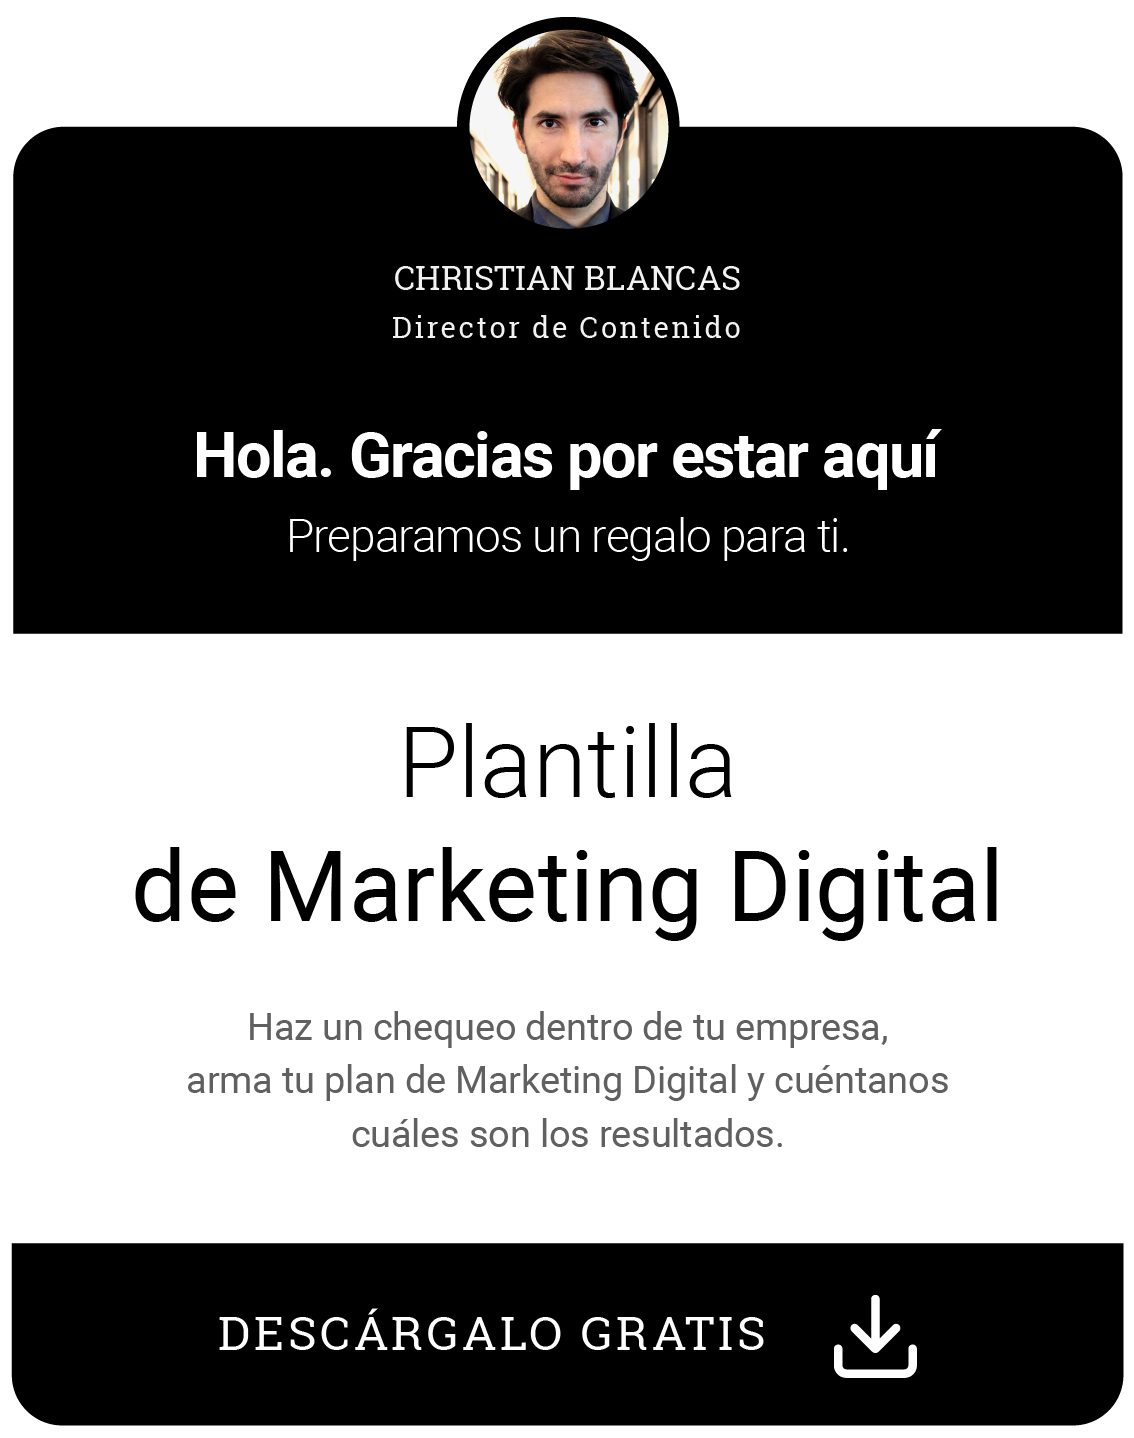 Plantilla de Marketing Digital